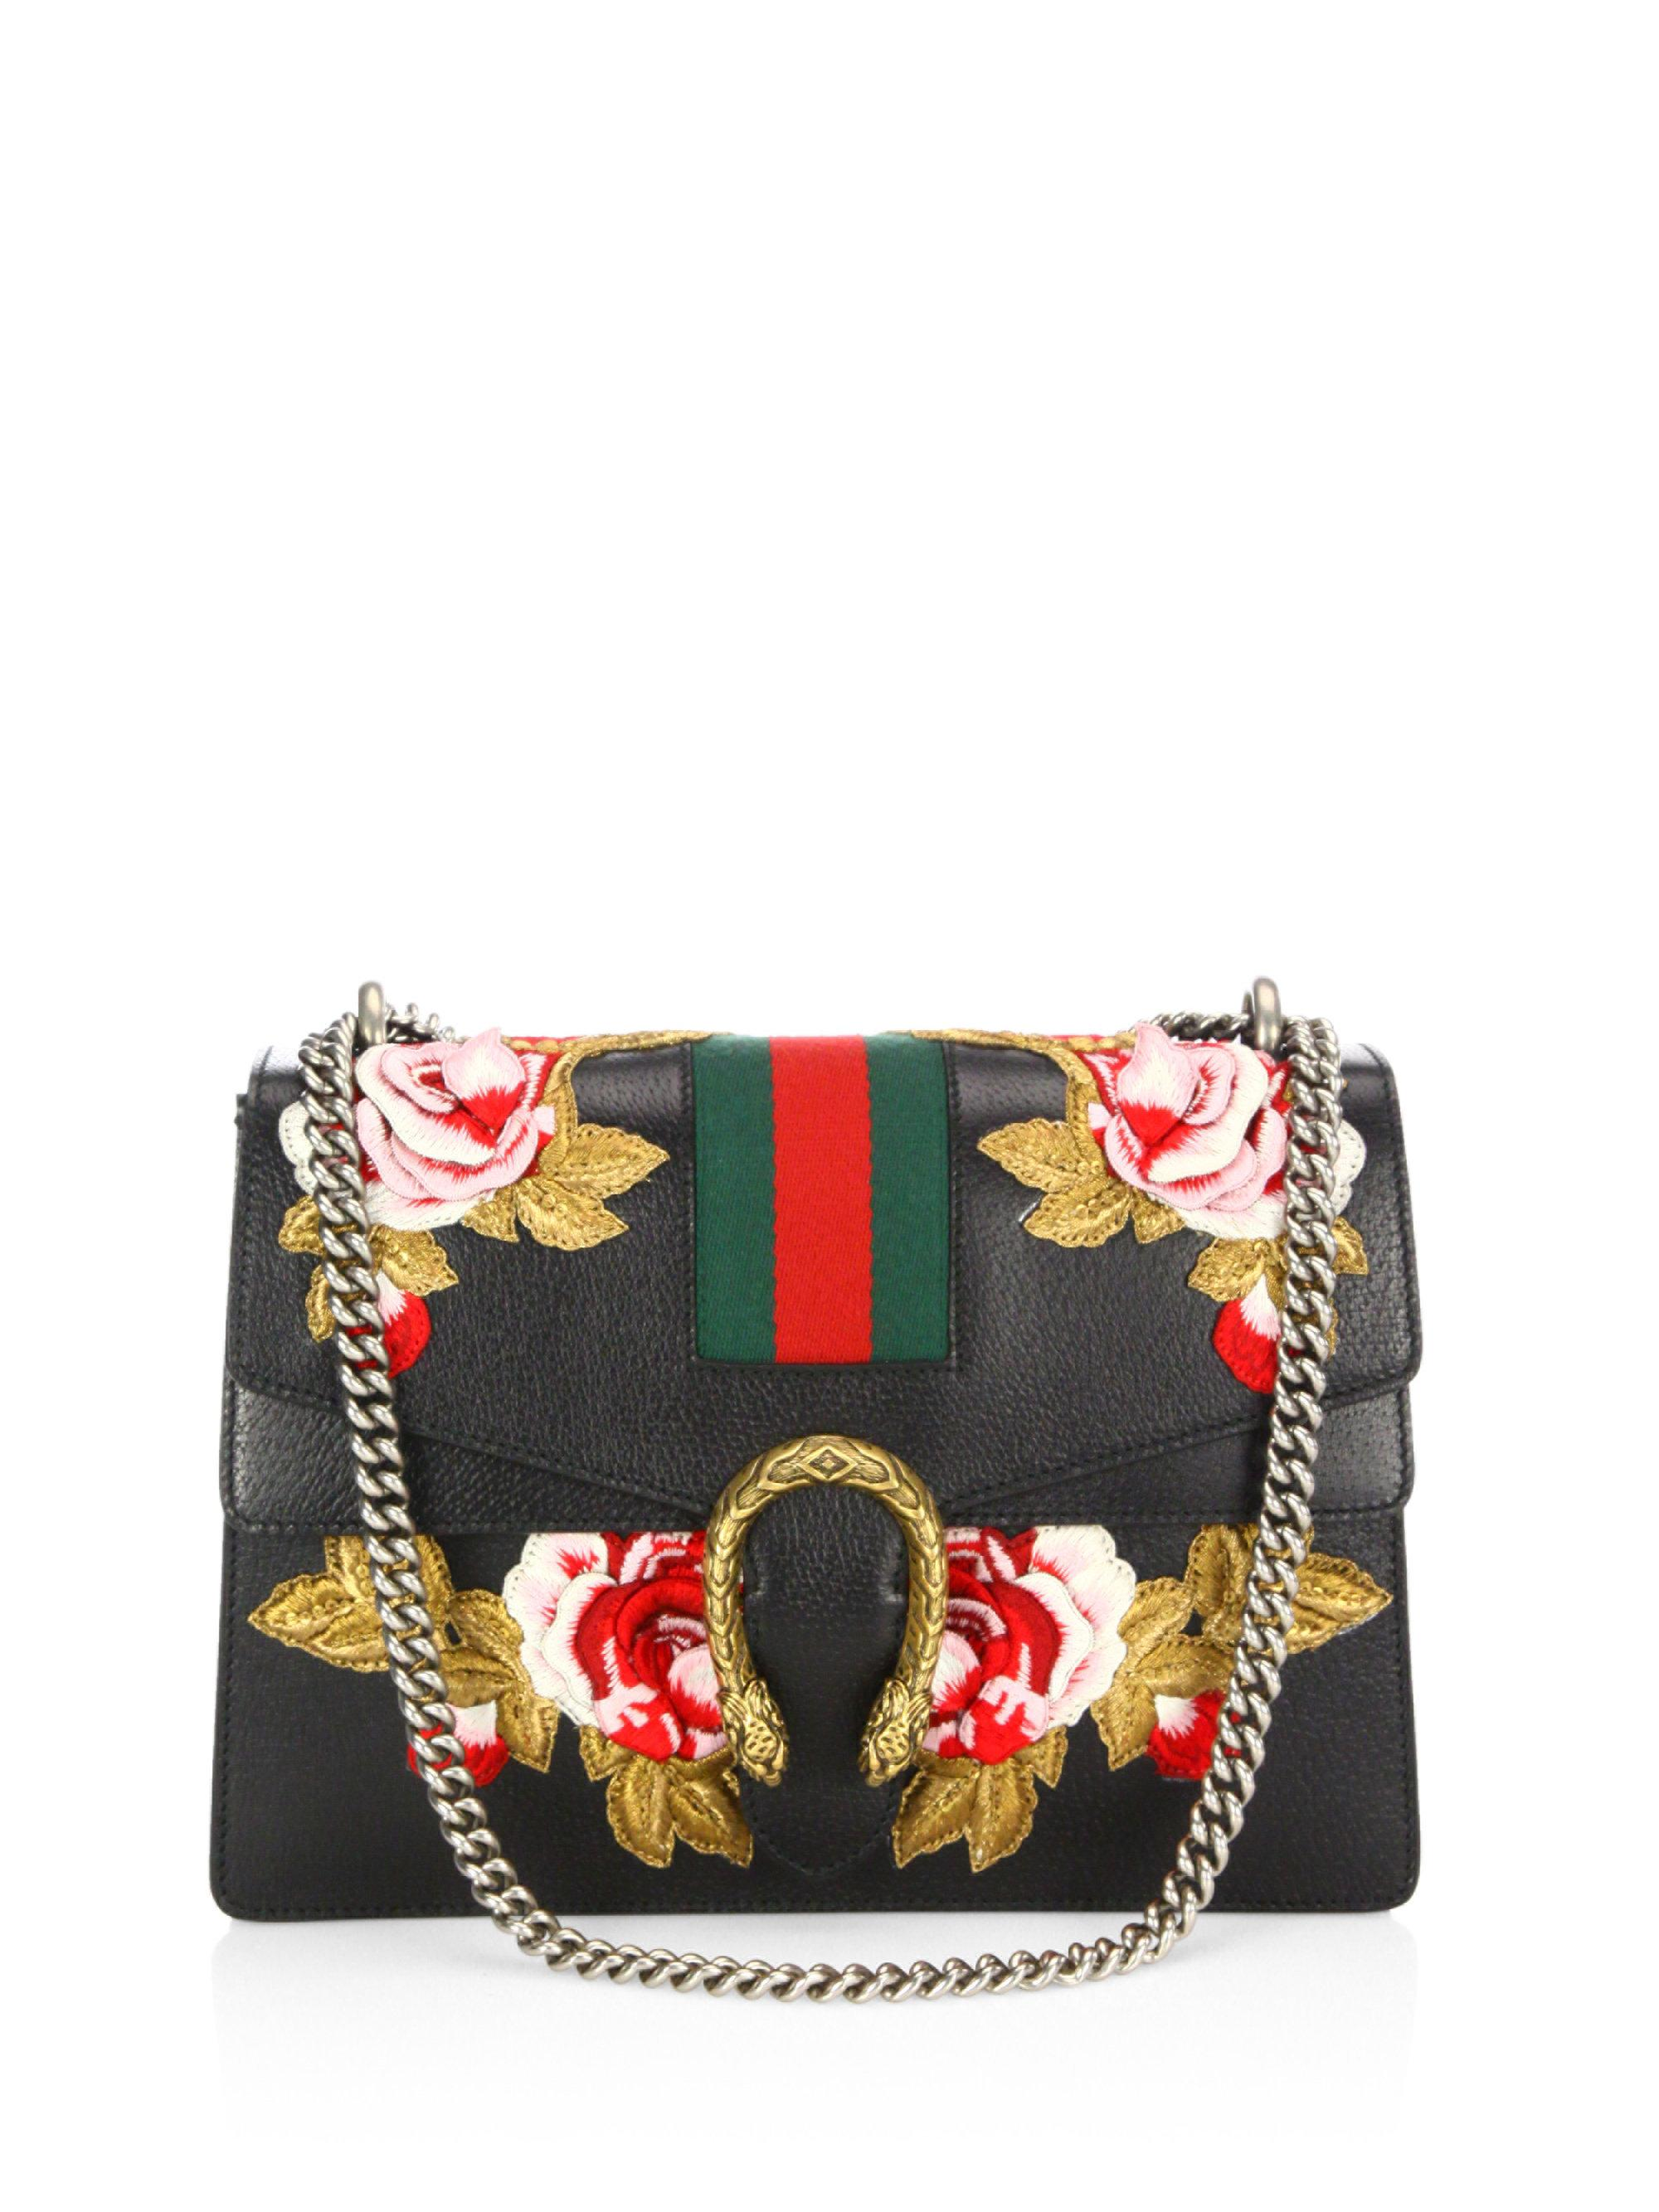 Lyst gucci dionysus rose embroidered leather shoulder